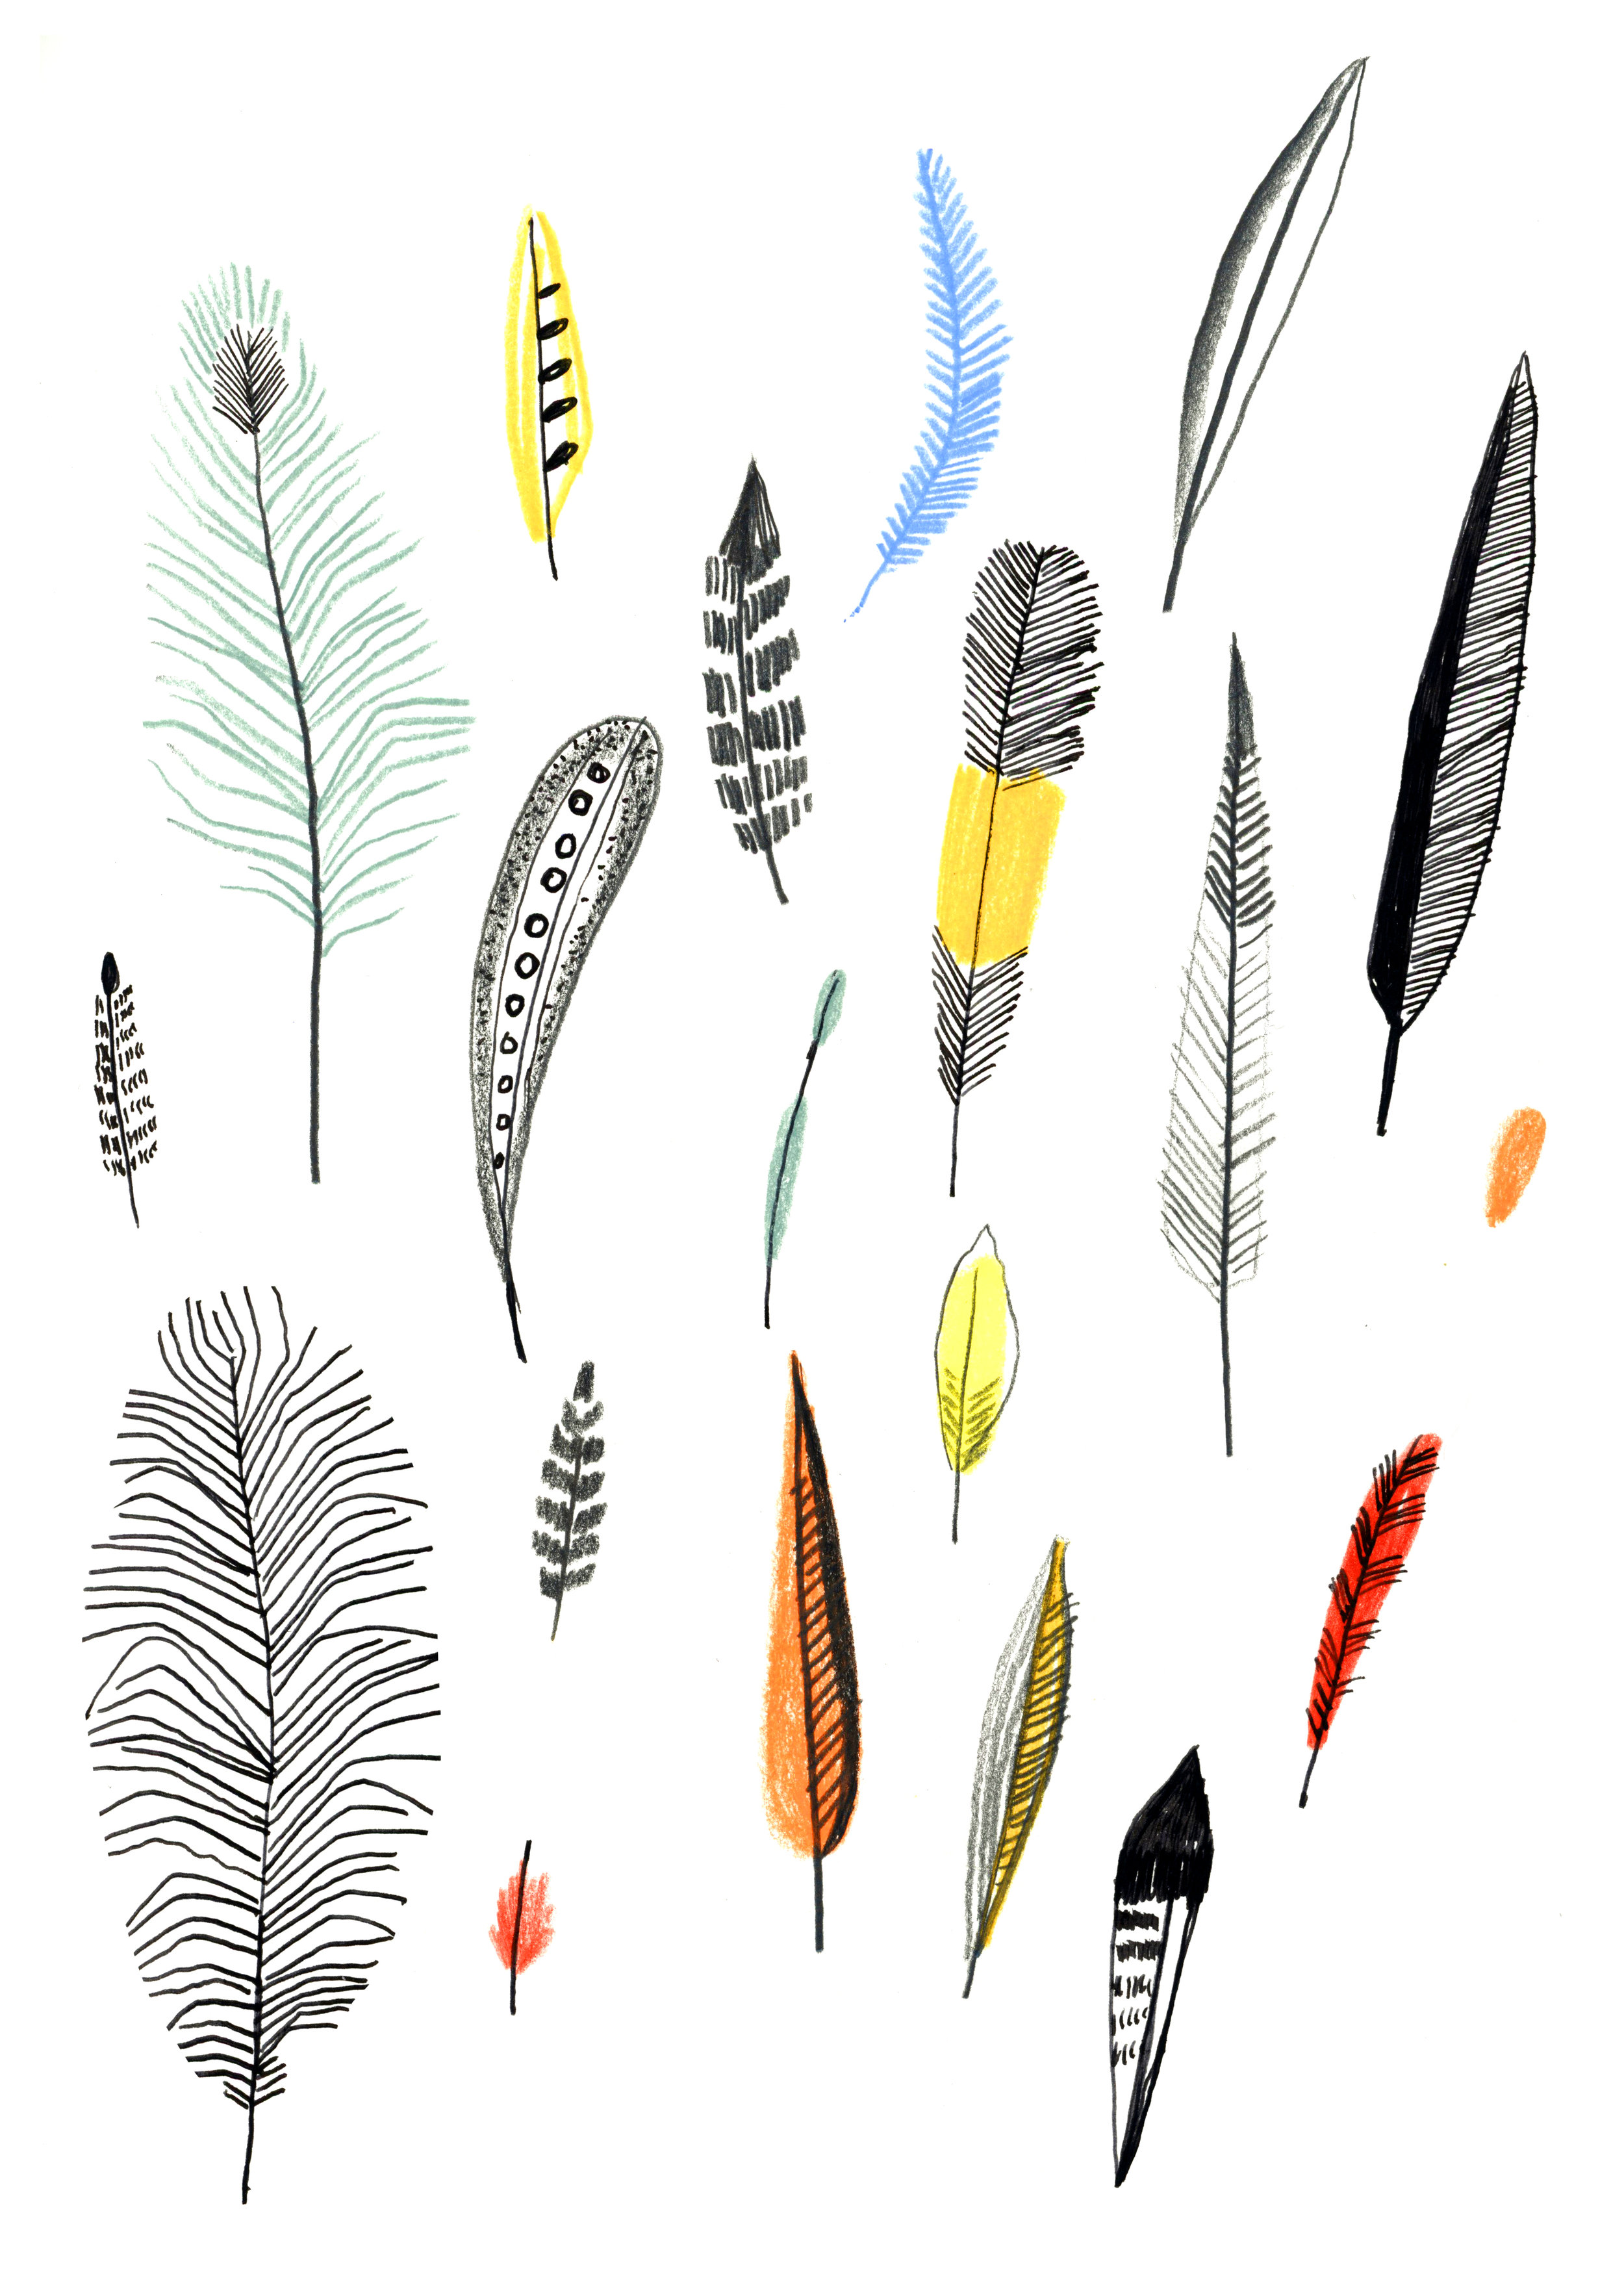 Feathers from Museum of Natural History , pencil and pen on paper, 2015